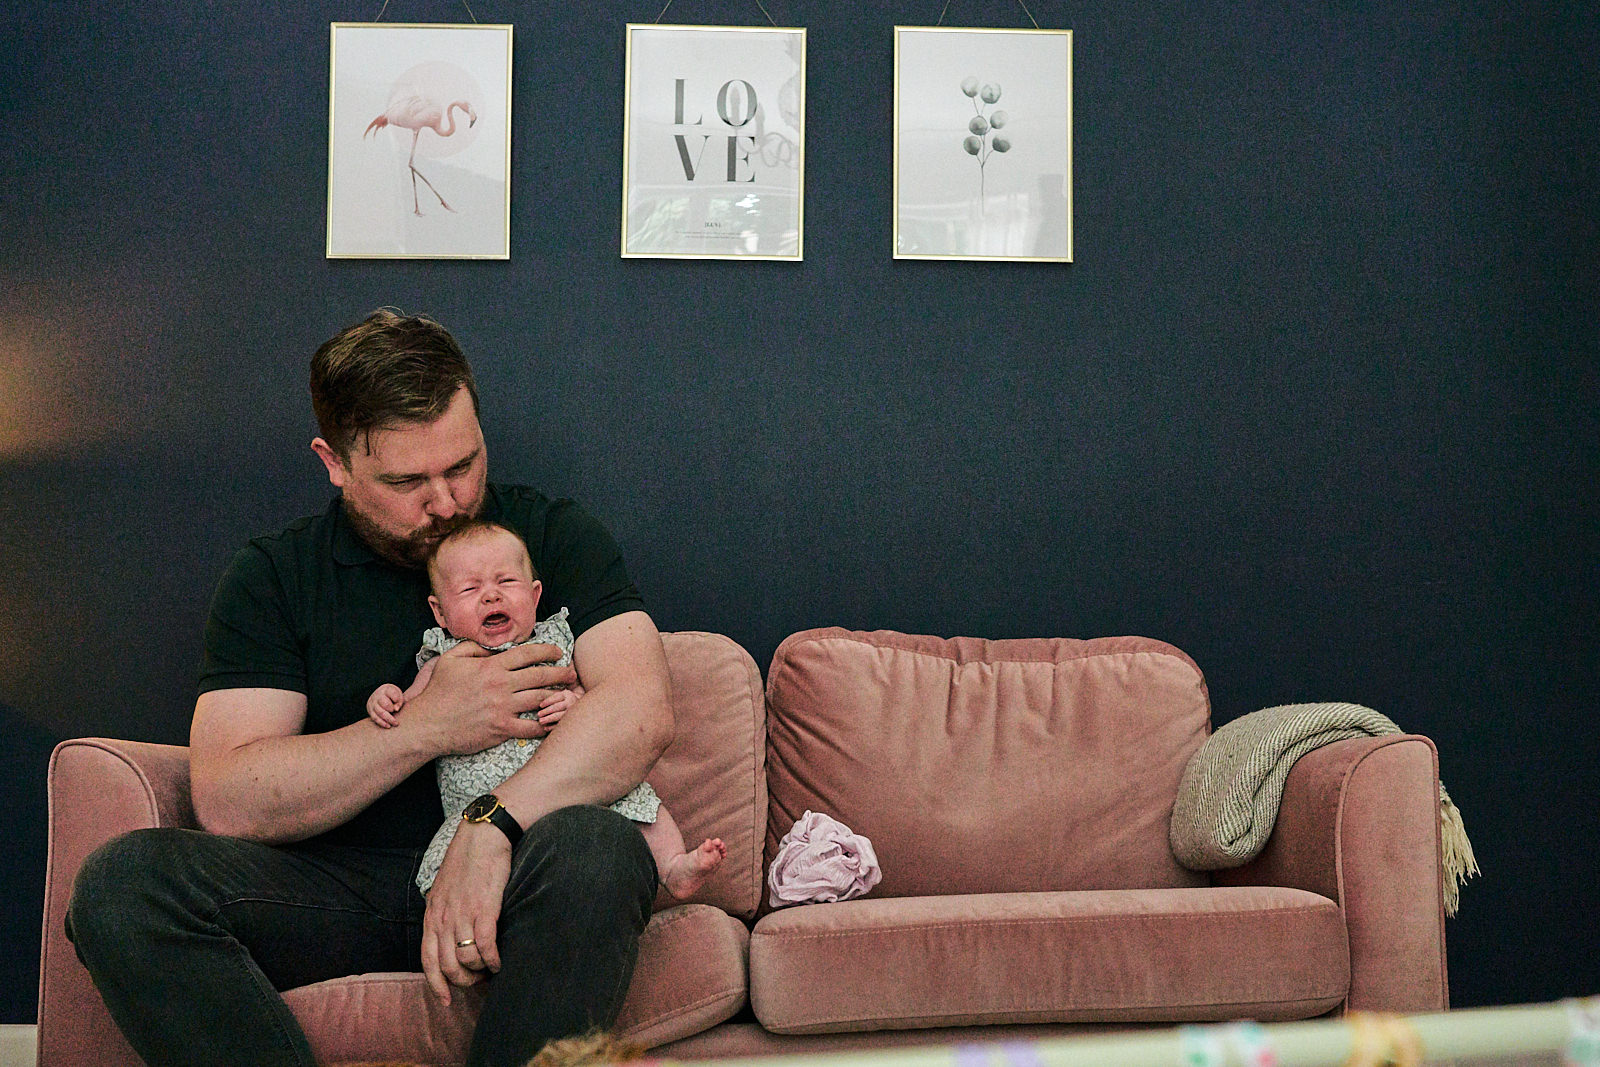 dad kisses baby sat on sofa for photographer